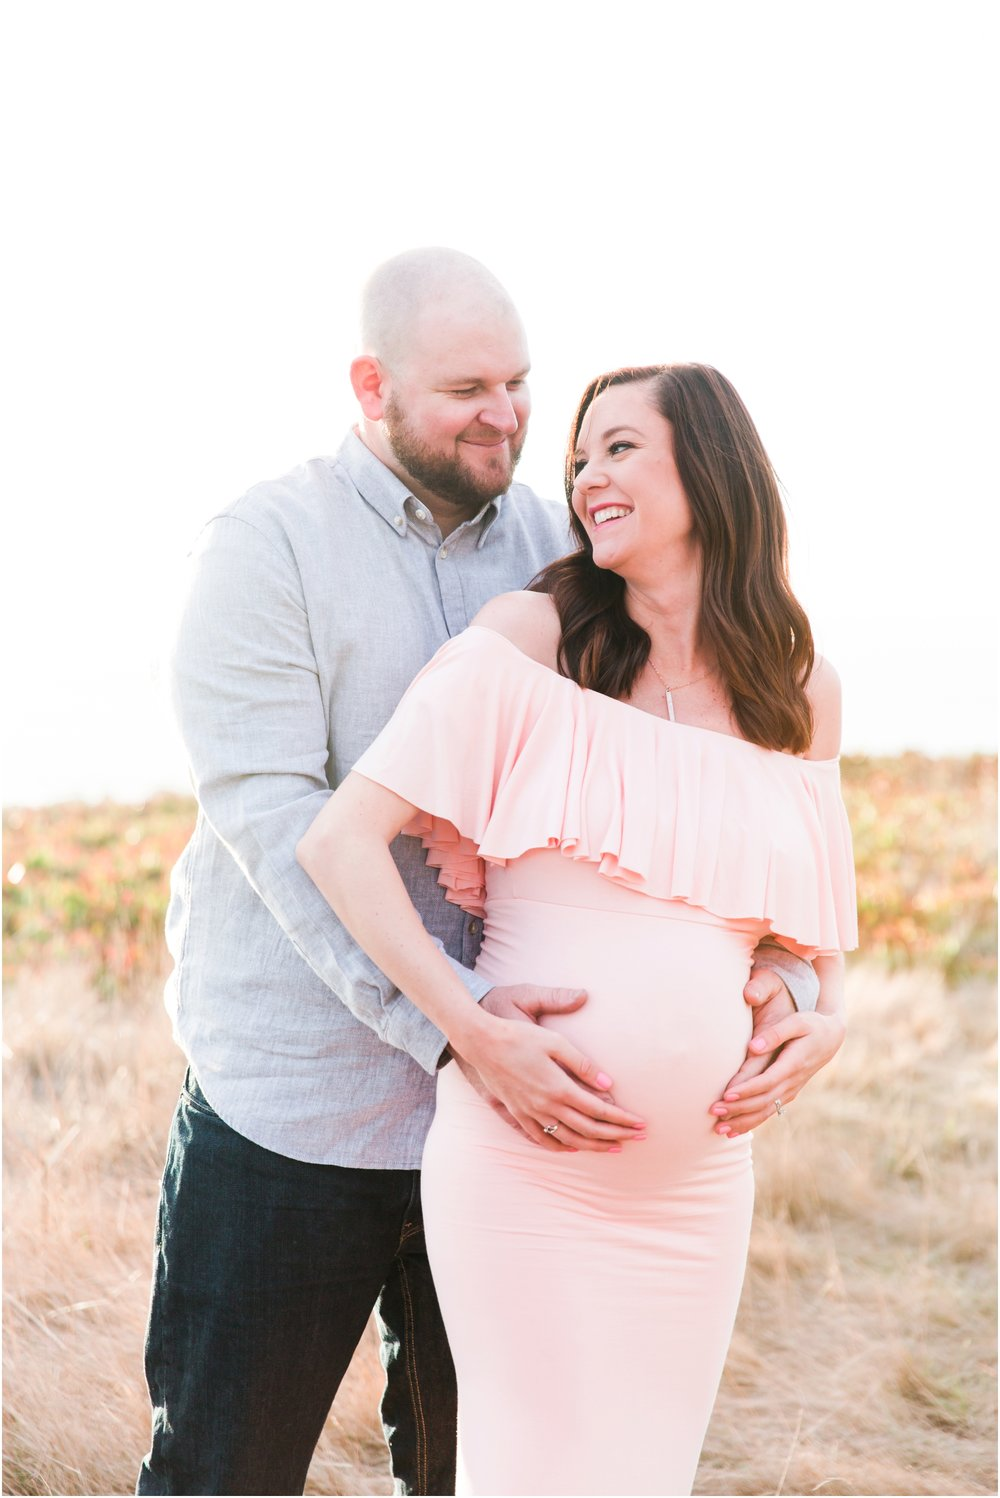 Half Moon Bay maternity pictures by Briana Calderon Photography_0525.jpg